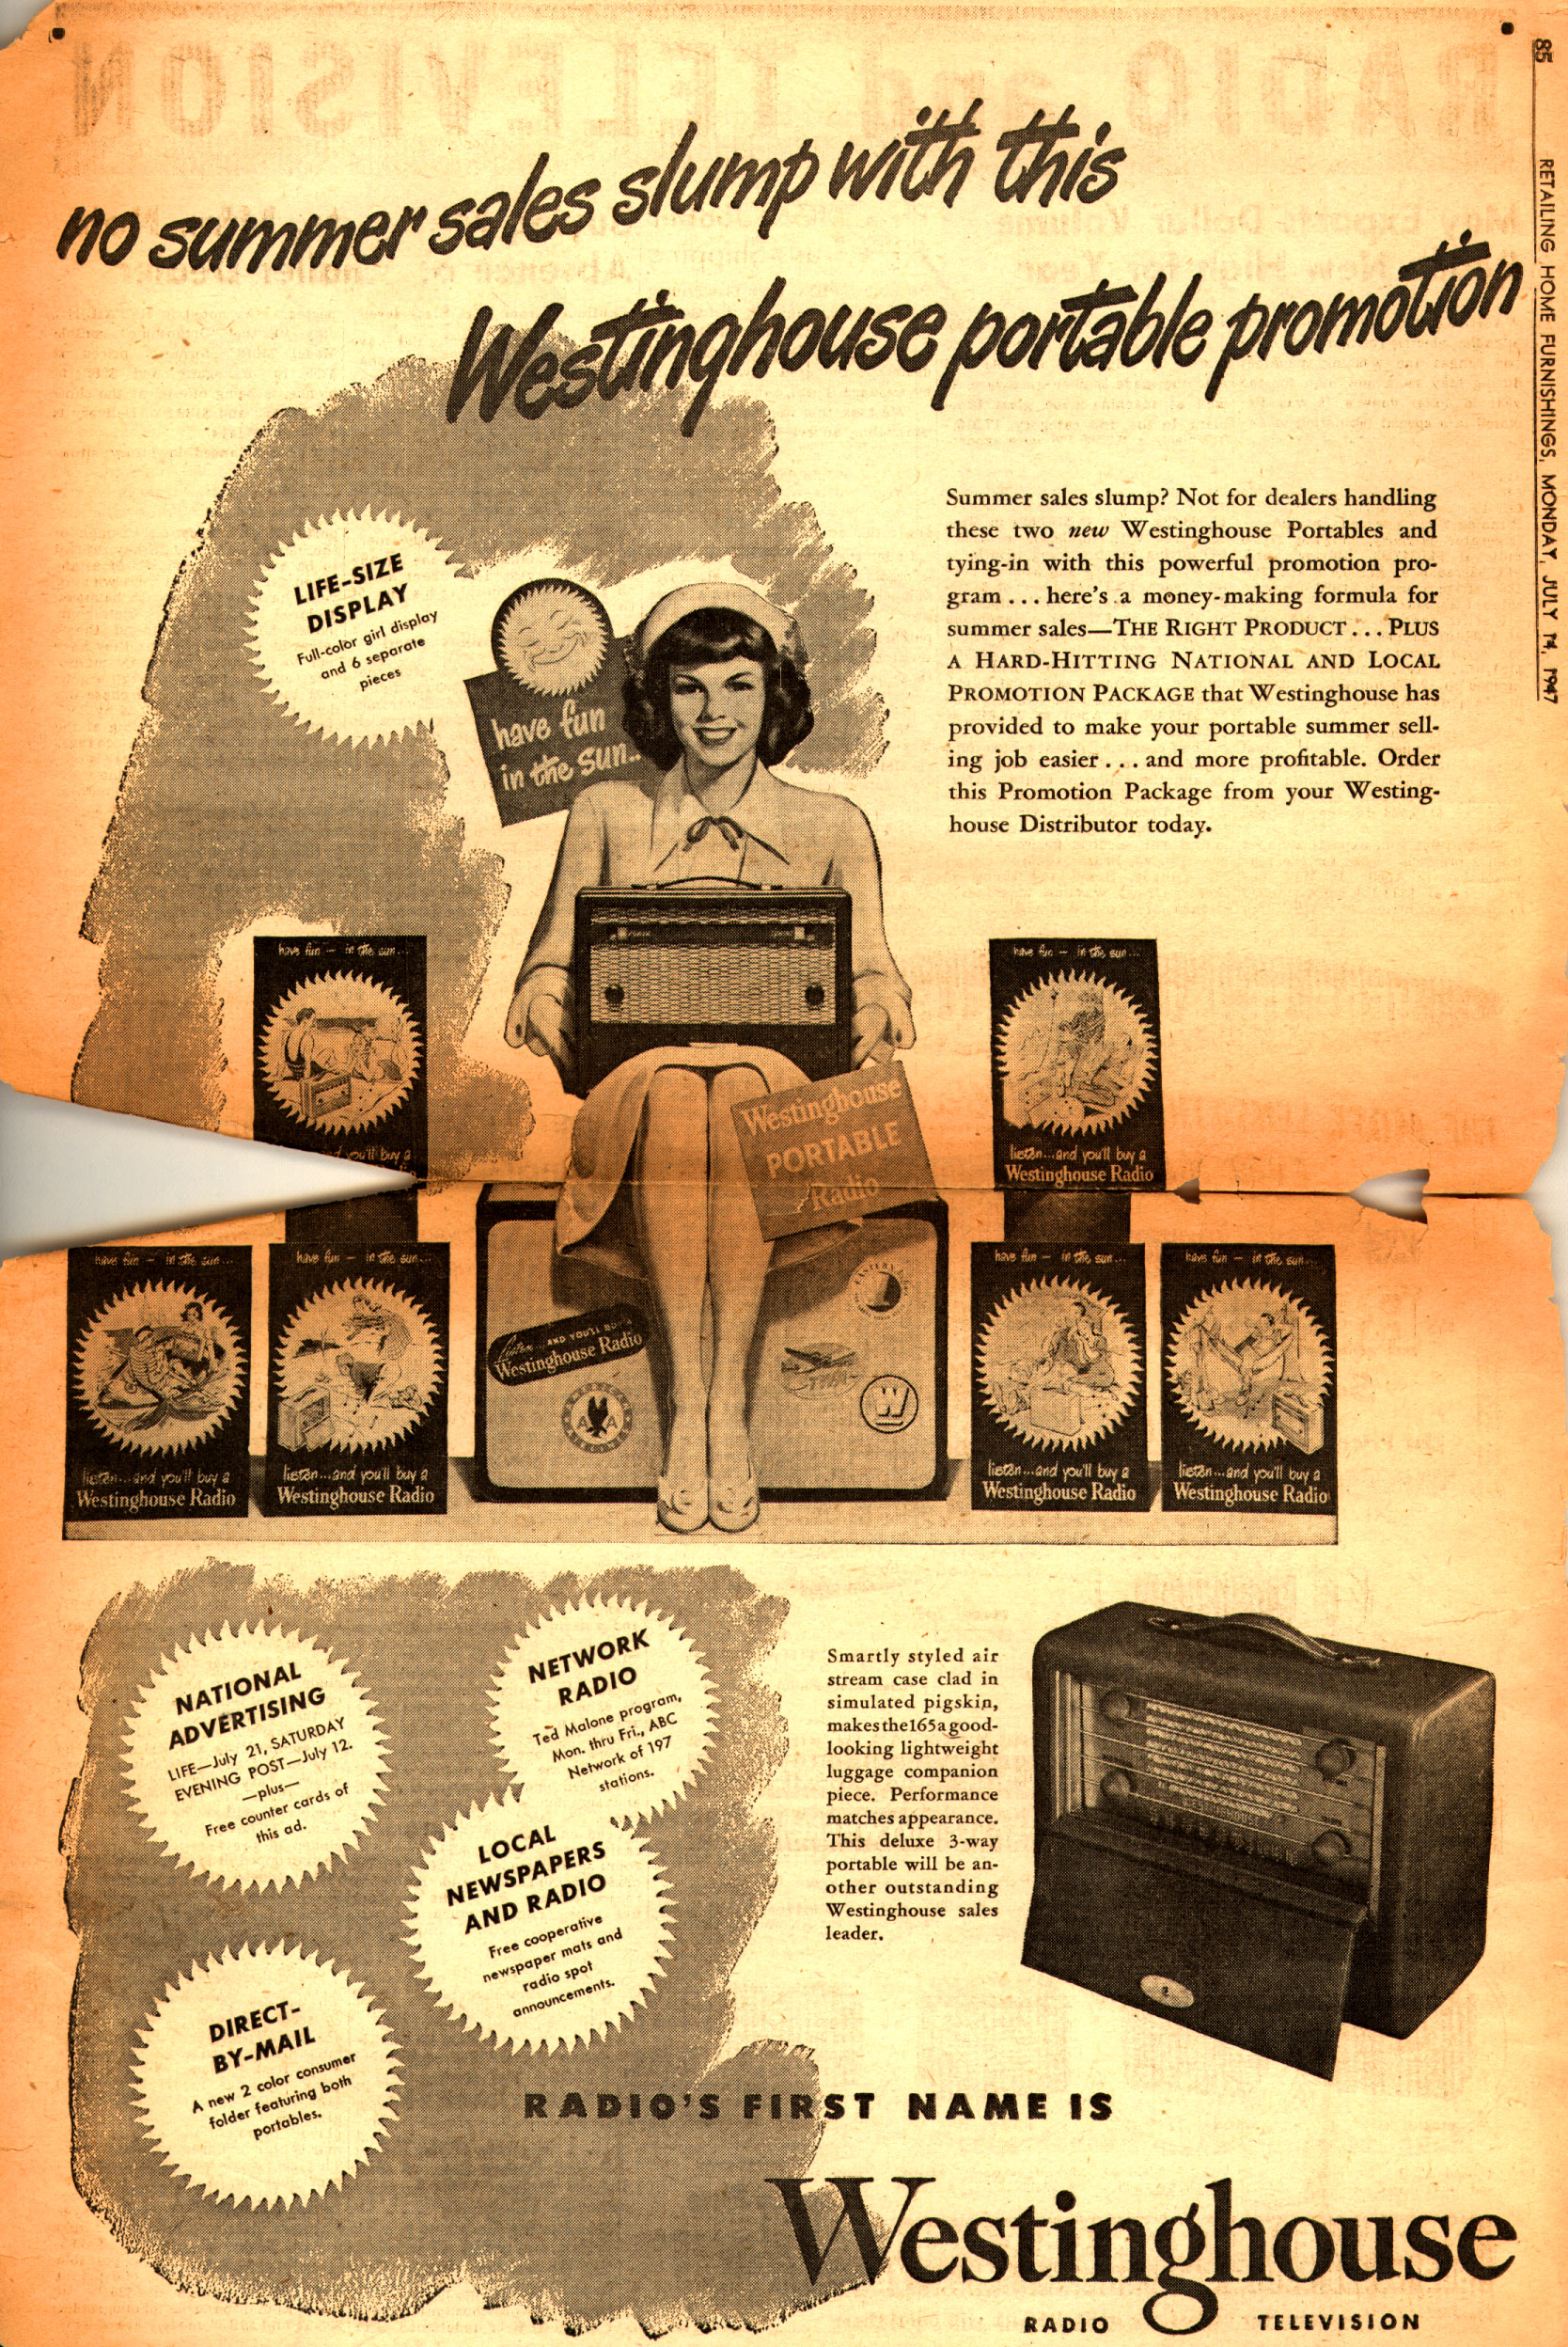 No_summer_sales_slump_with_this_Westinghouse_portable_promotion